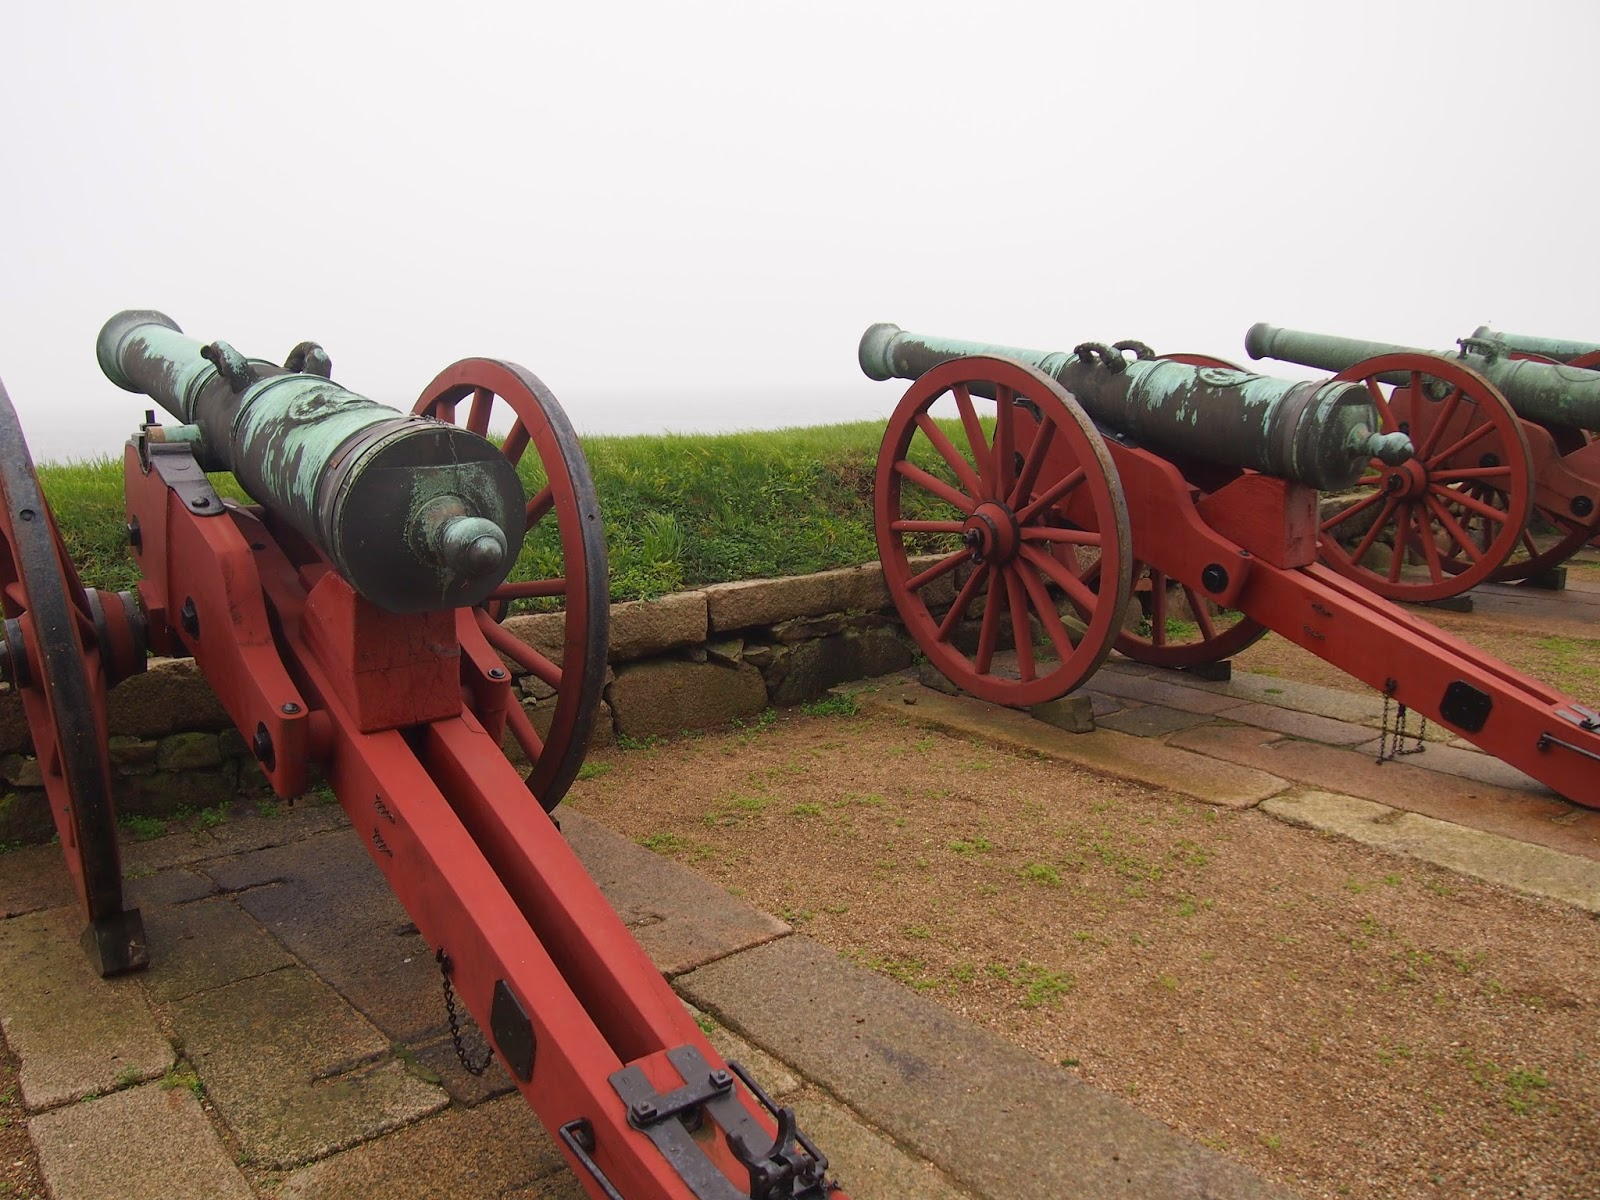 cannons at the Helsignor castle